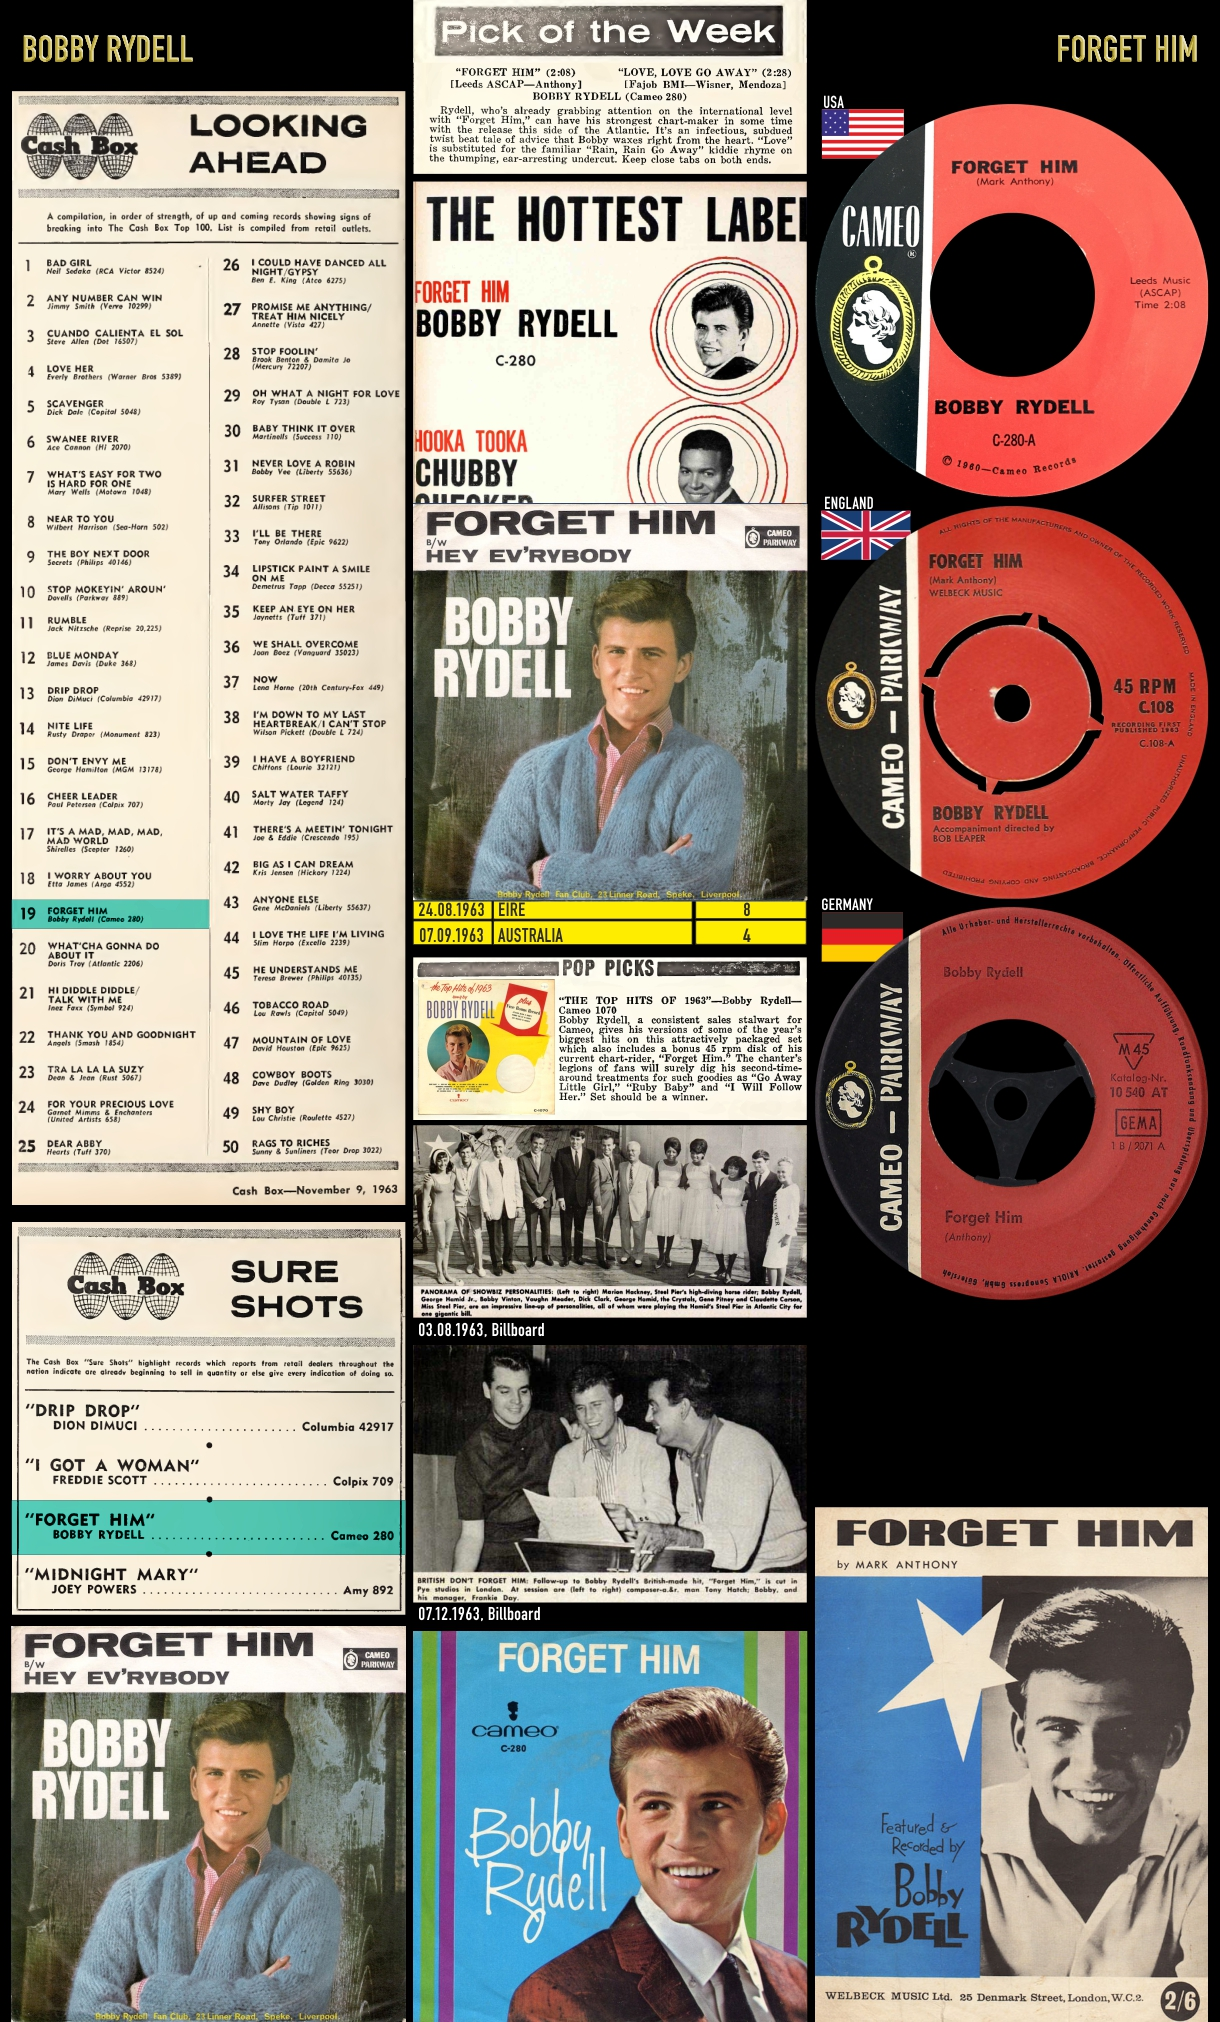 630525_Bobby Rydell_Forget Him